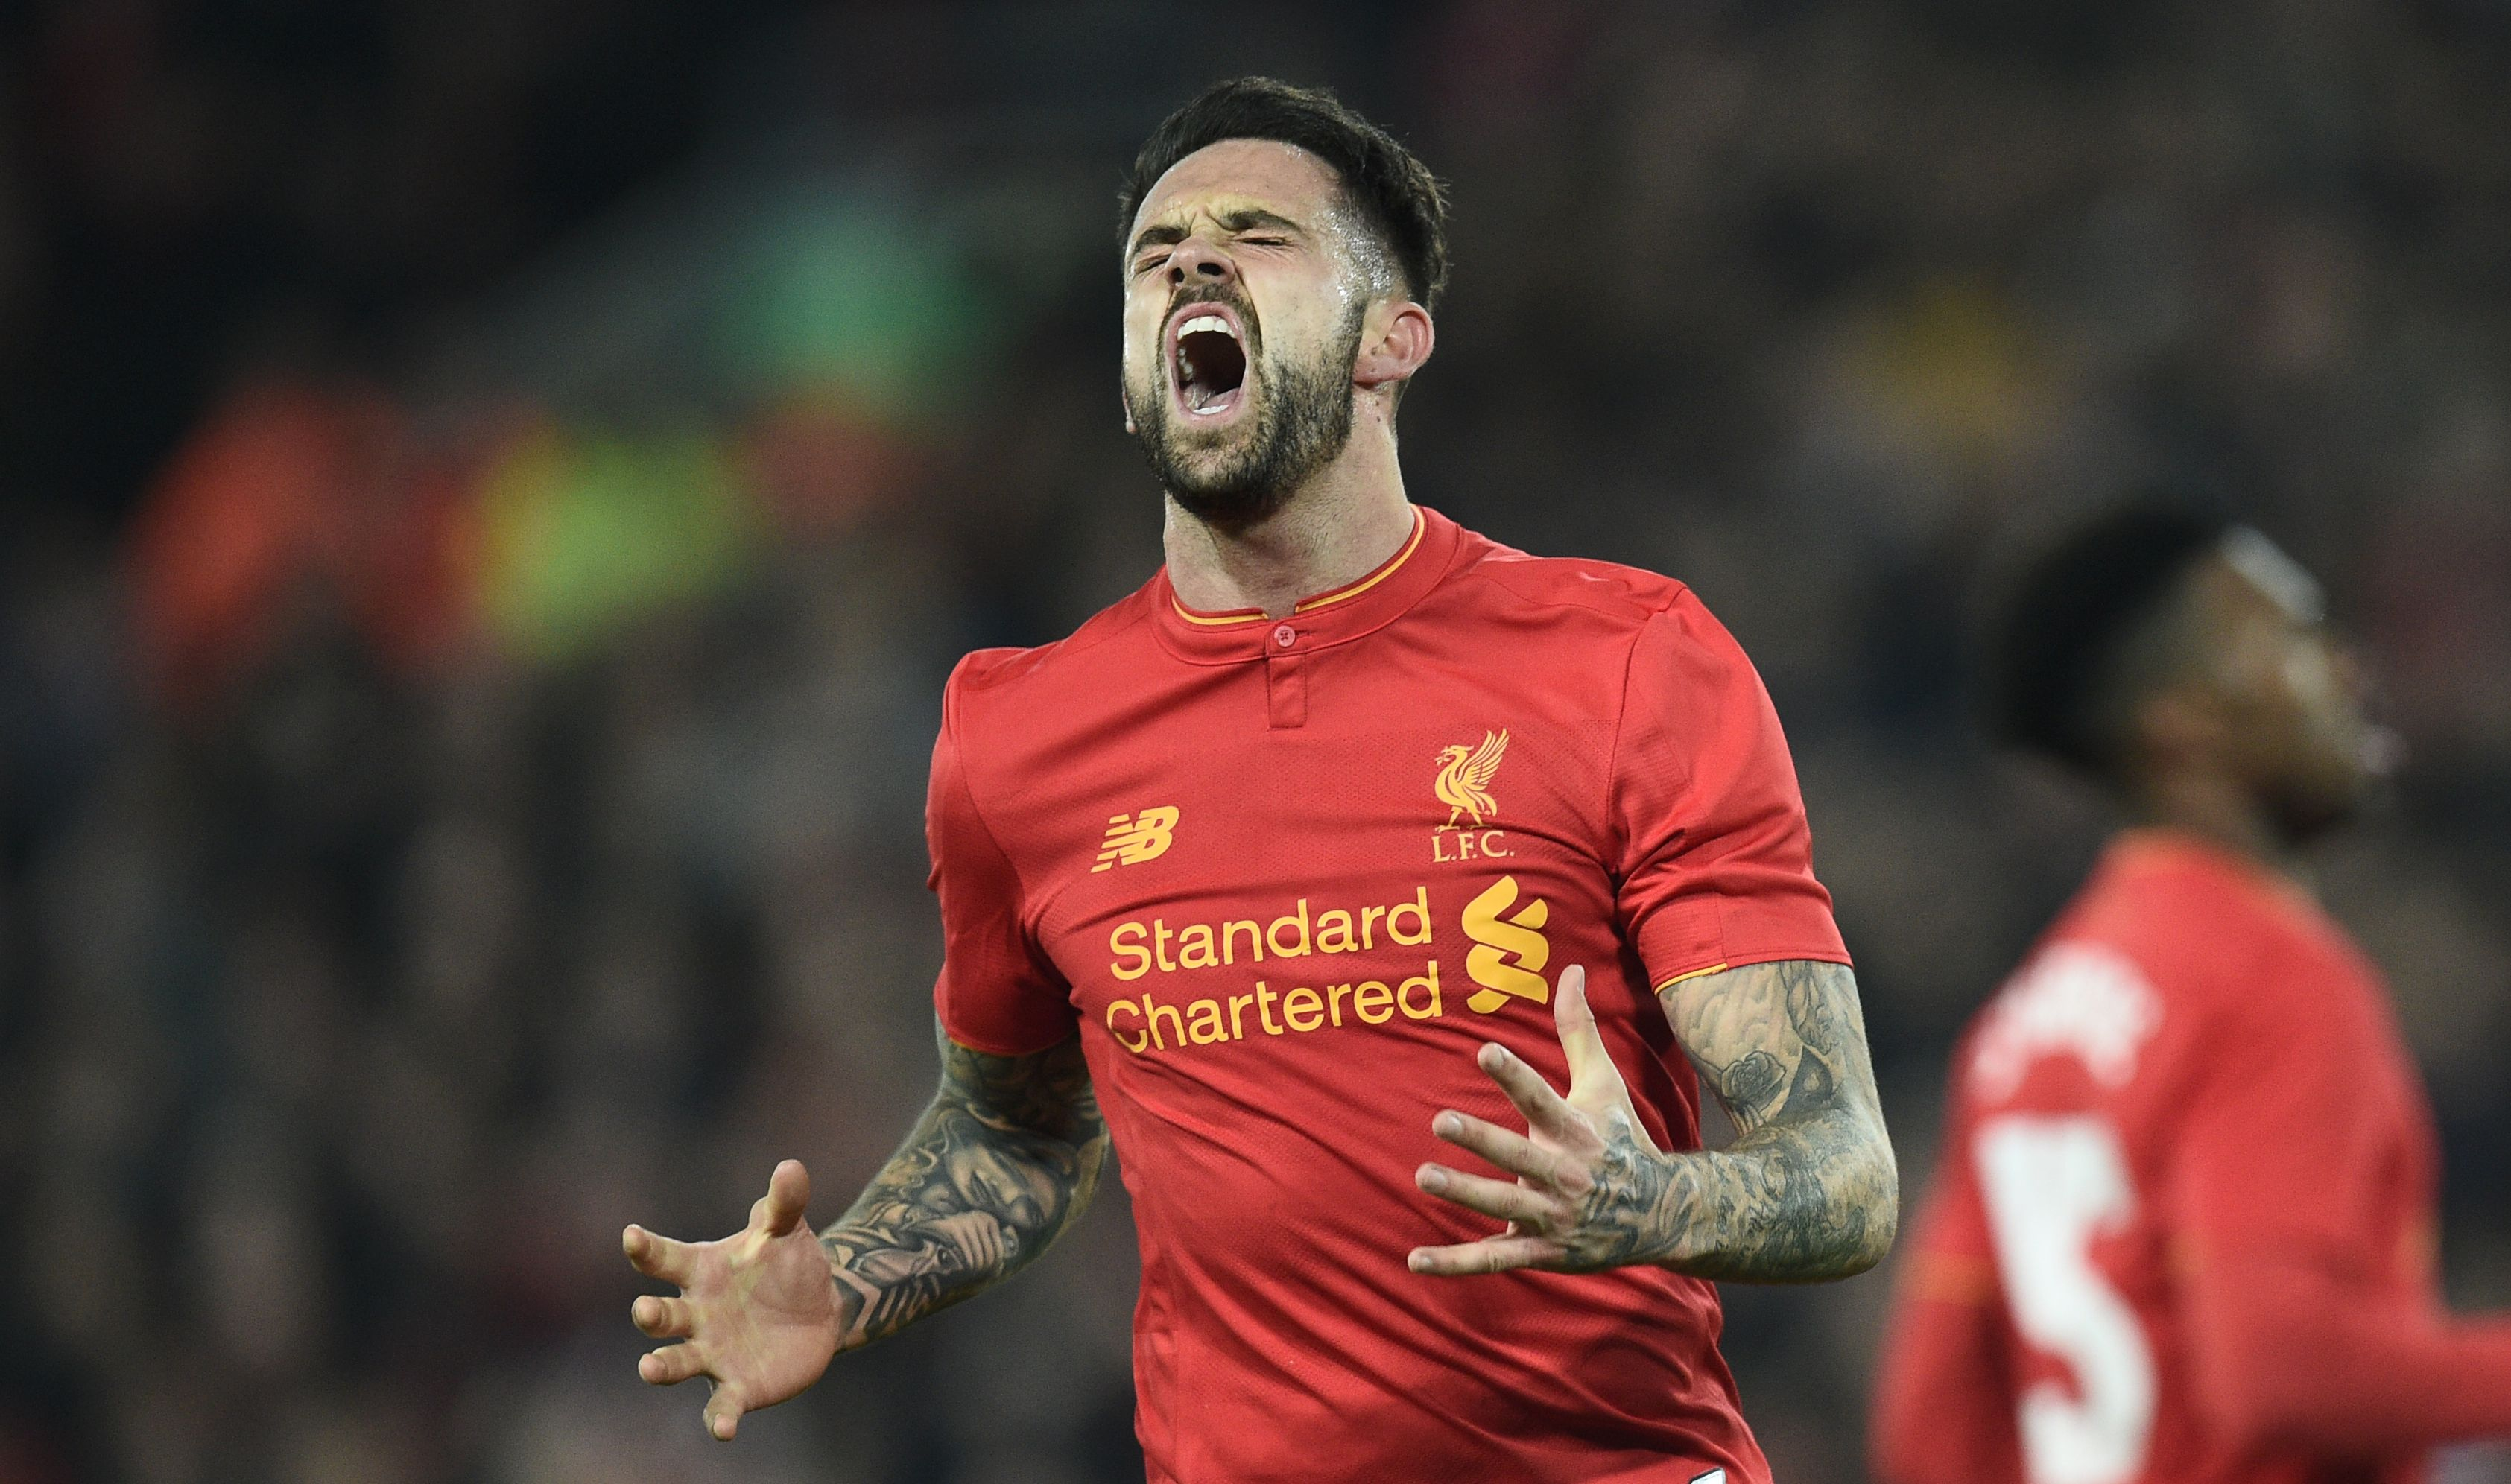 Liverpool striker Danny Ings suffers another heartbreaking knee injury ruling him out for the season